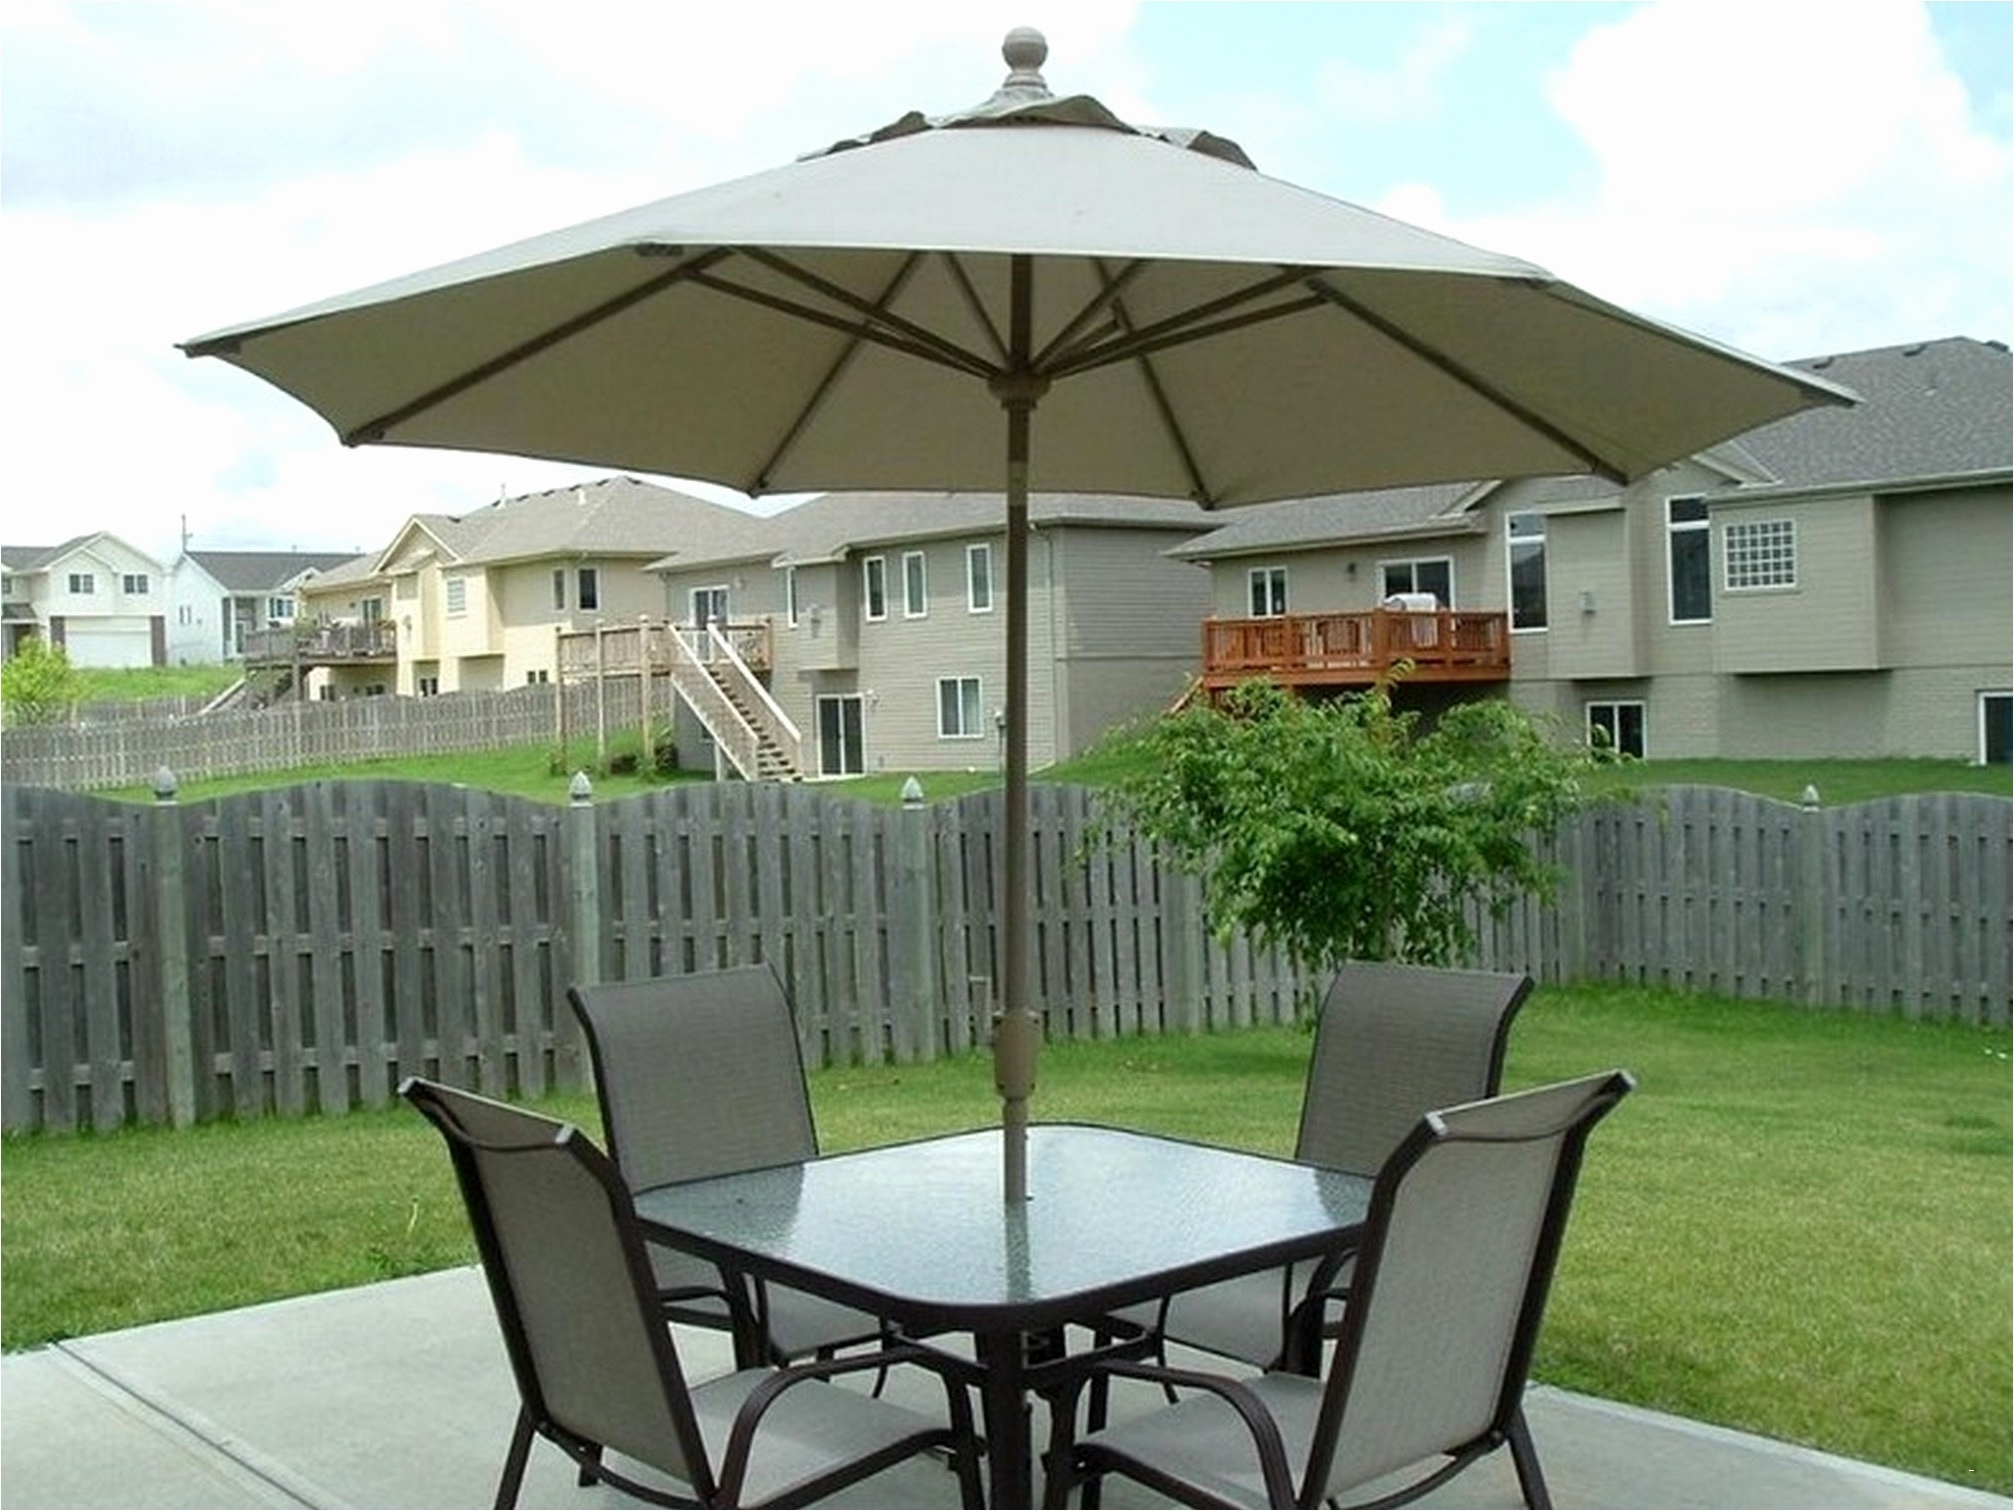 Fashionable Small Patio Tables With Umbrellas Hole With Patio Tables With Umbrella Hole Fresh Small Patio End Table Luxury (View 3 of 20)